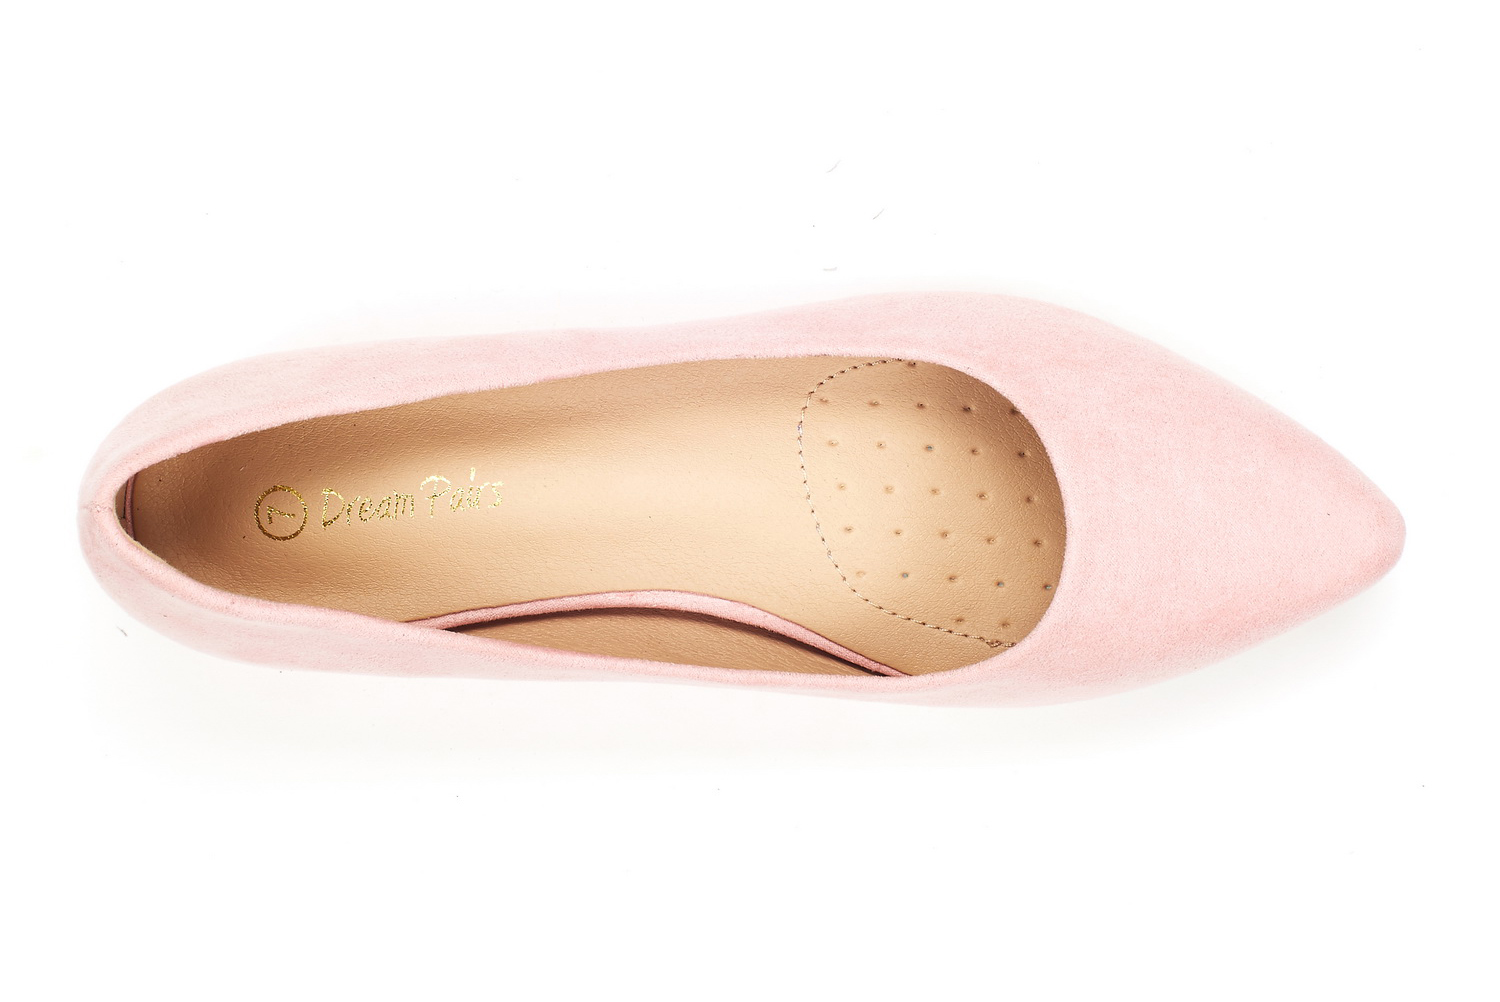 DREAM-PAIRS-Women-Low-Wedge-Flats-Ladies-Pointed-Toe-Slip-On-Comfort-Flat-Shoes thumbnail 81